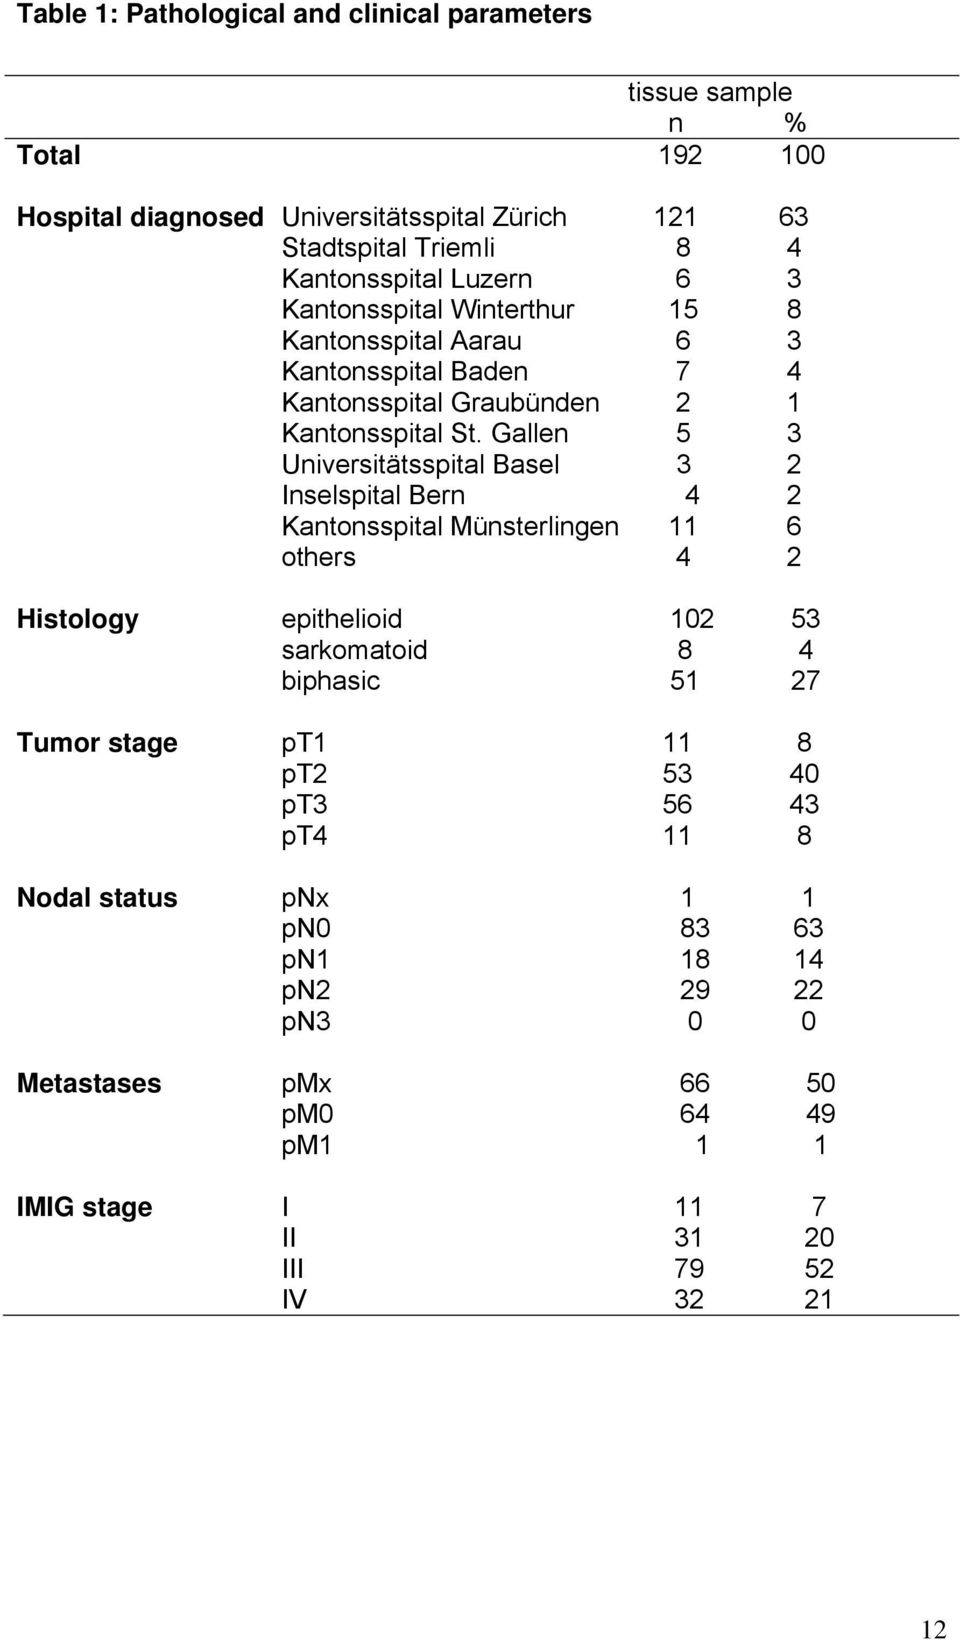 Gallen 5 3 Universitätsspital Basel 3 2 Inselspital Bern 4 2 Kantonsspital Münsterlingen 11 6 others 4 2 Histology epithelioid 102 53 sarkomatoid 8 4 biphasic 51 27